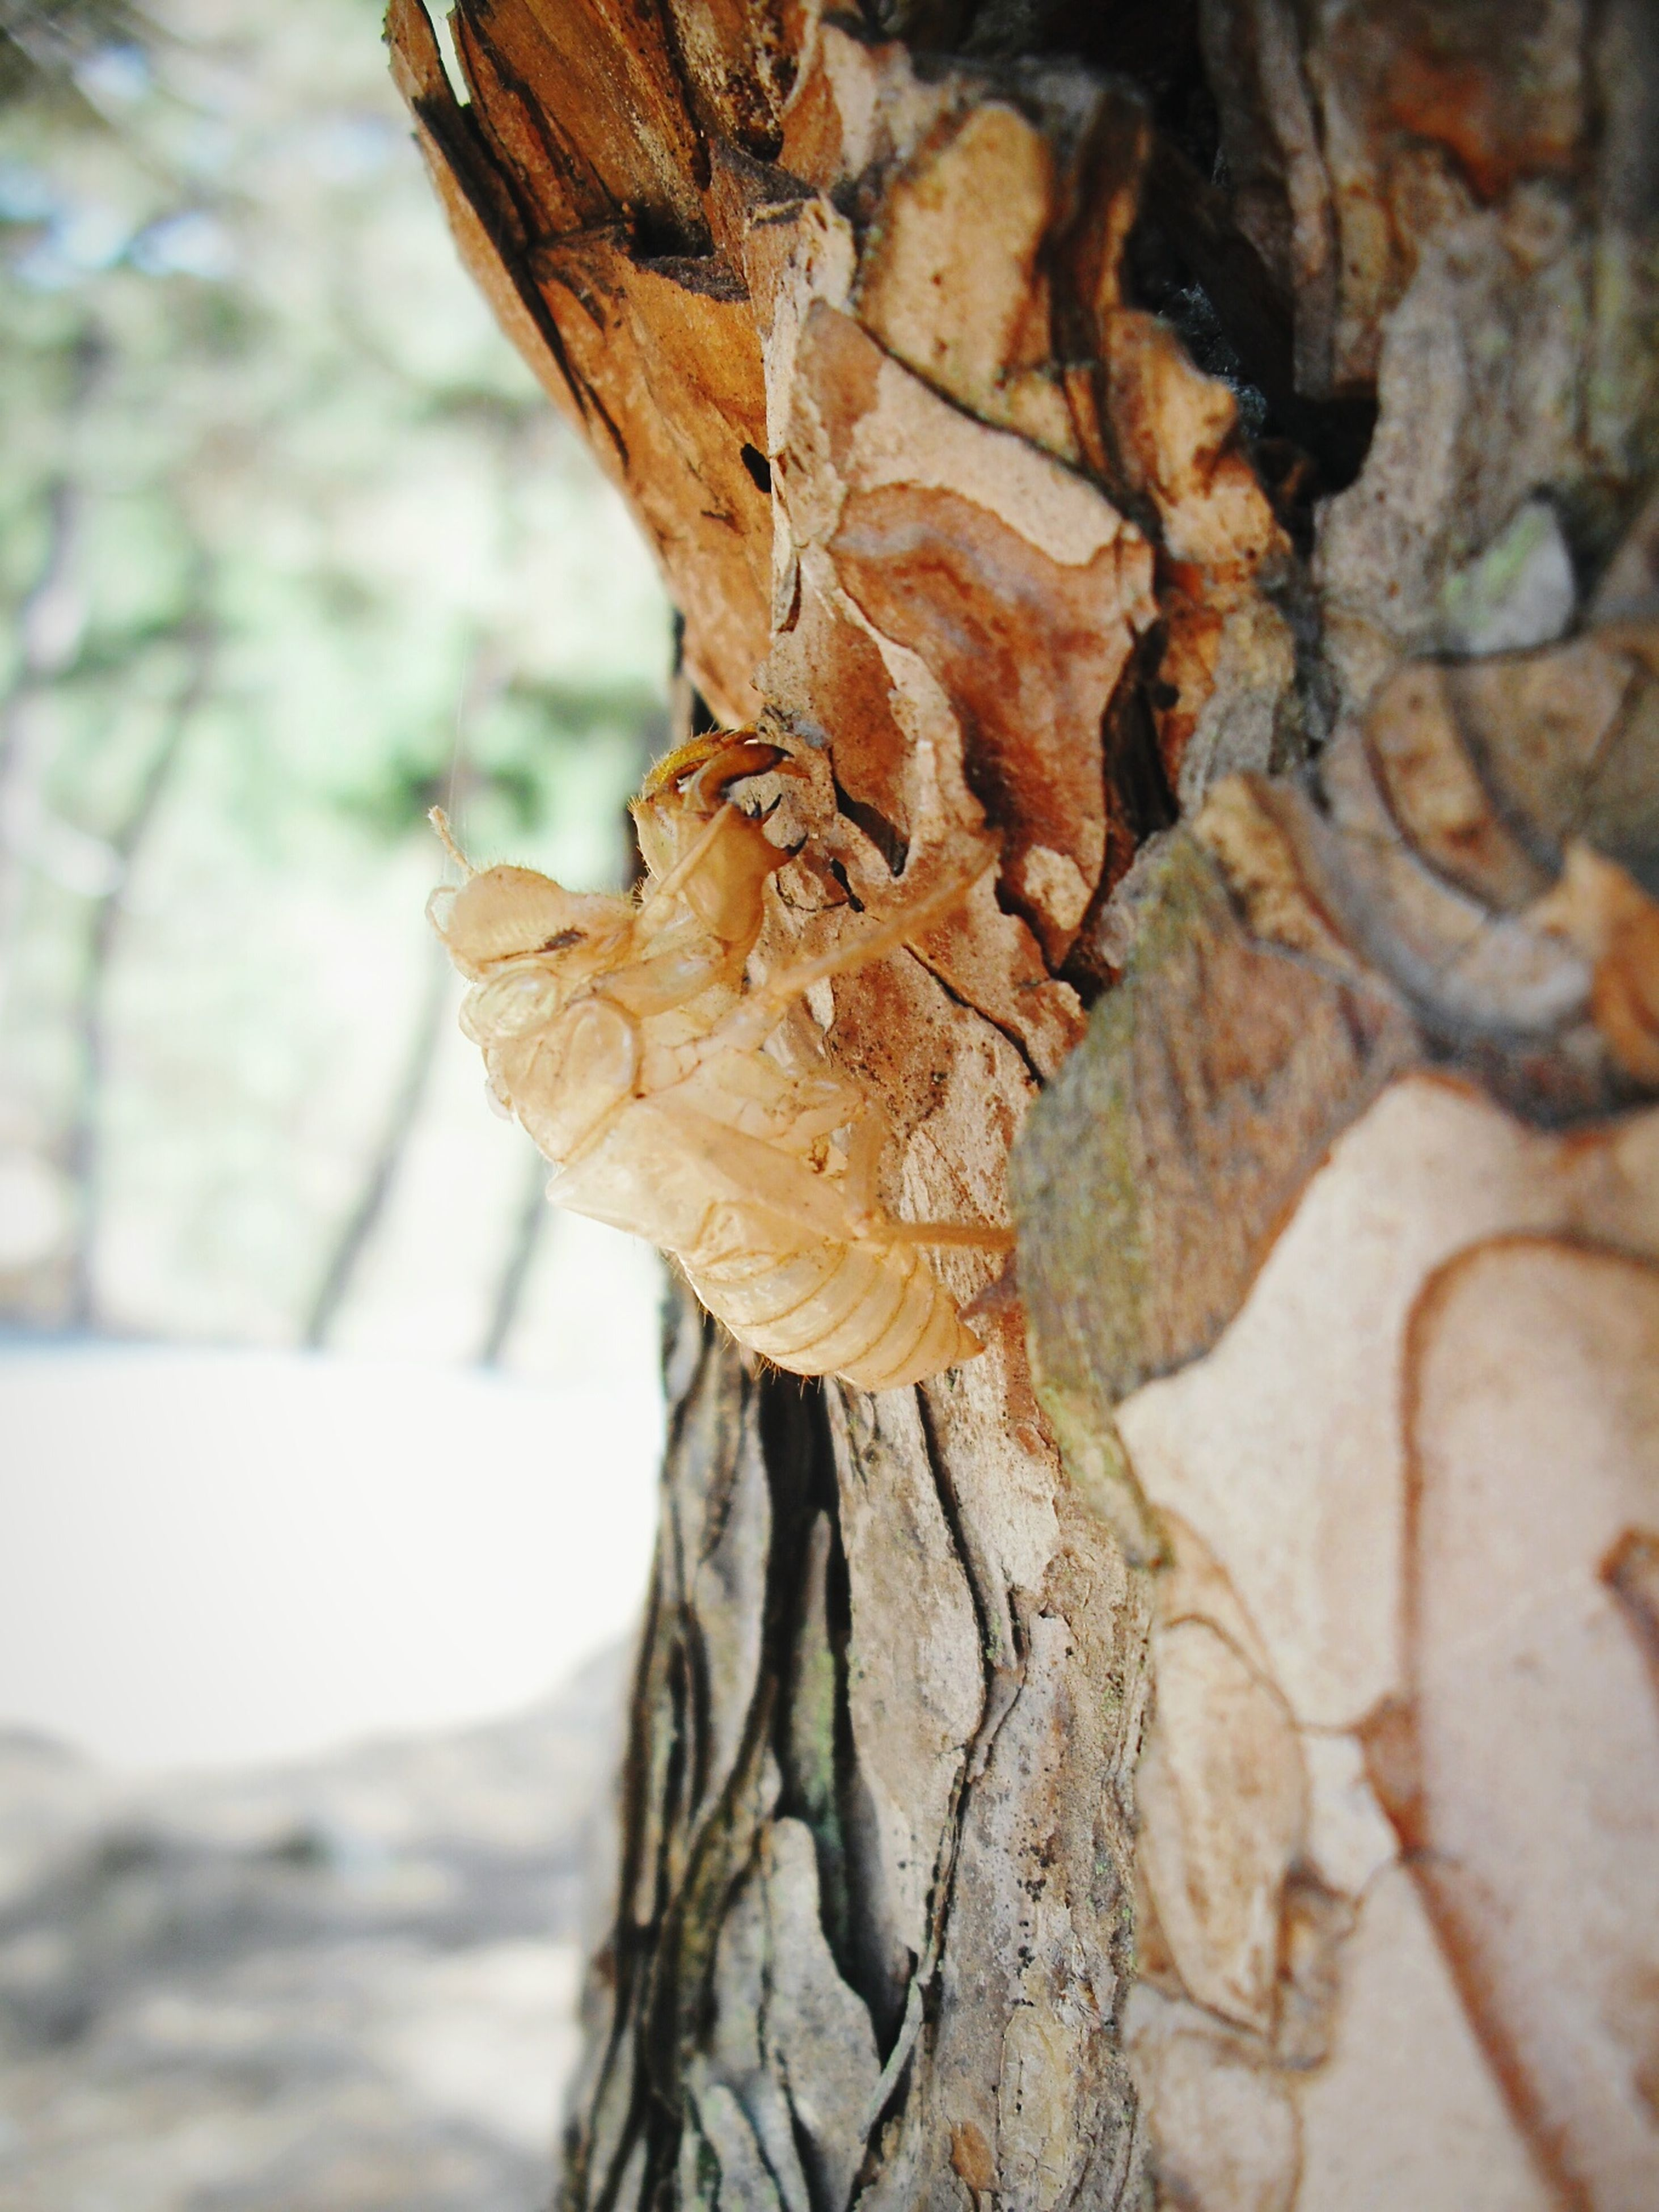 focus on foreground, close-up, tree trunk, tree, wood - material, dry, textured, bark, brown, nature, selective focus, part of, day, natural pattern, outdoors, branch, leaf, rough, wood, no people